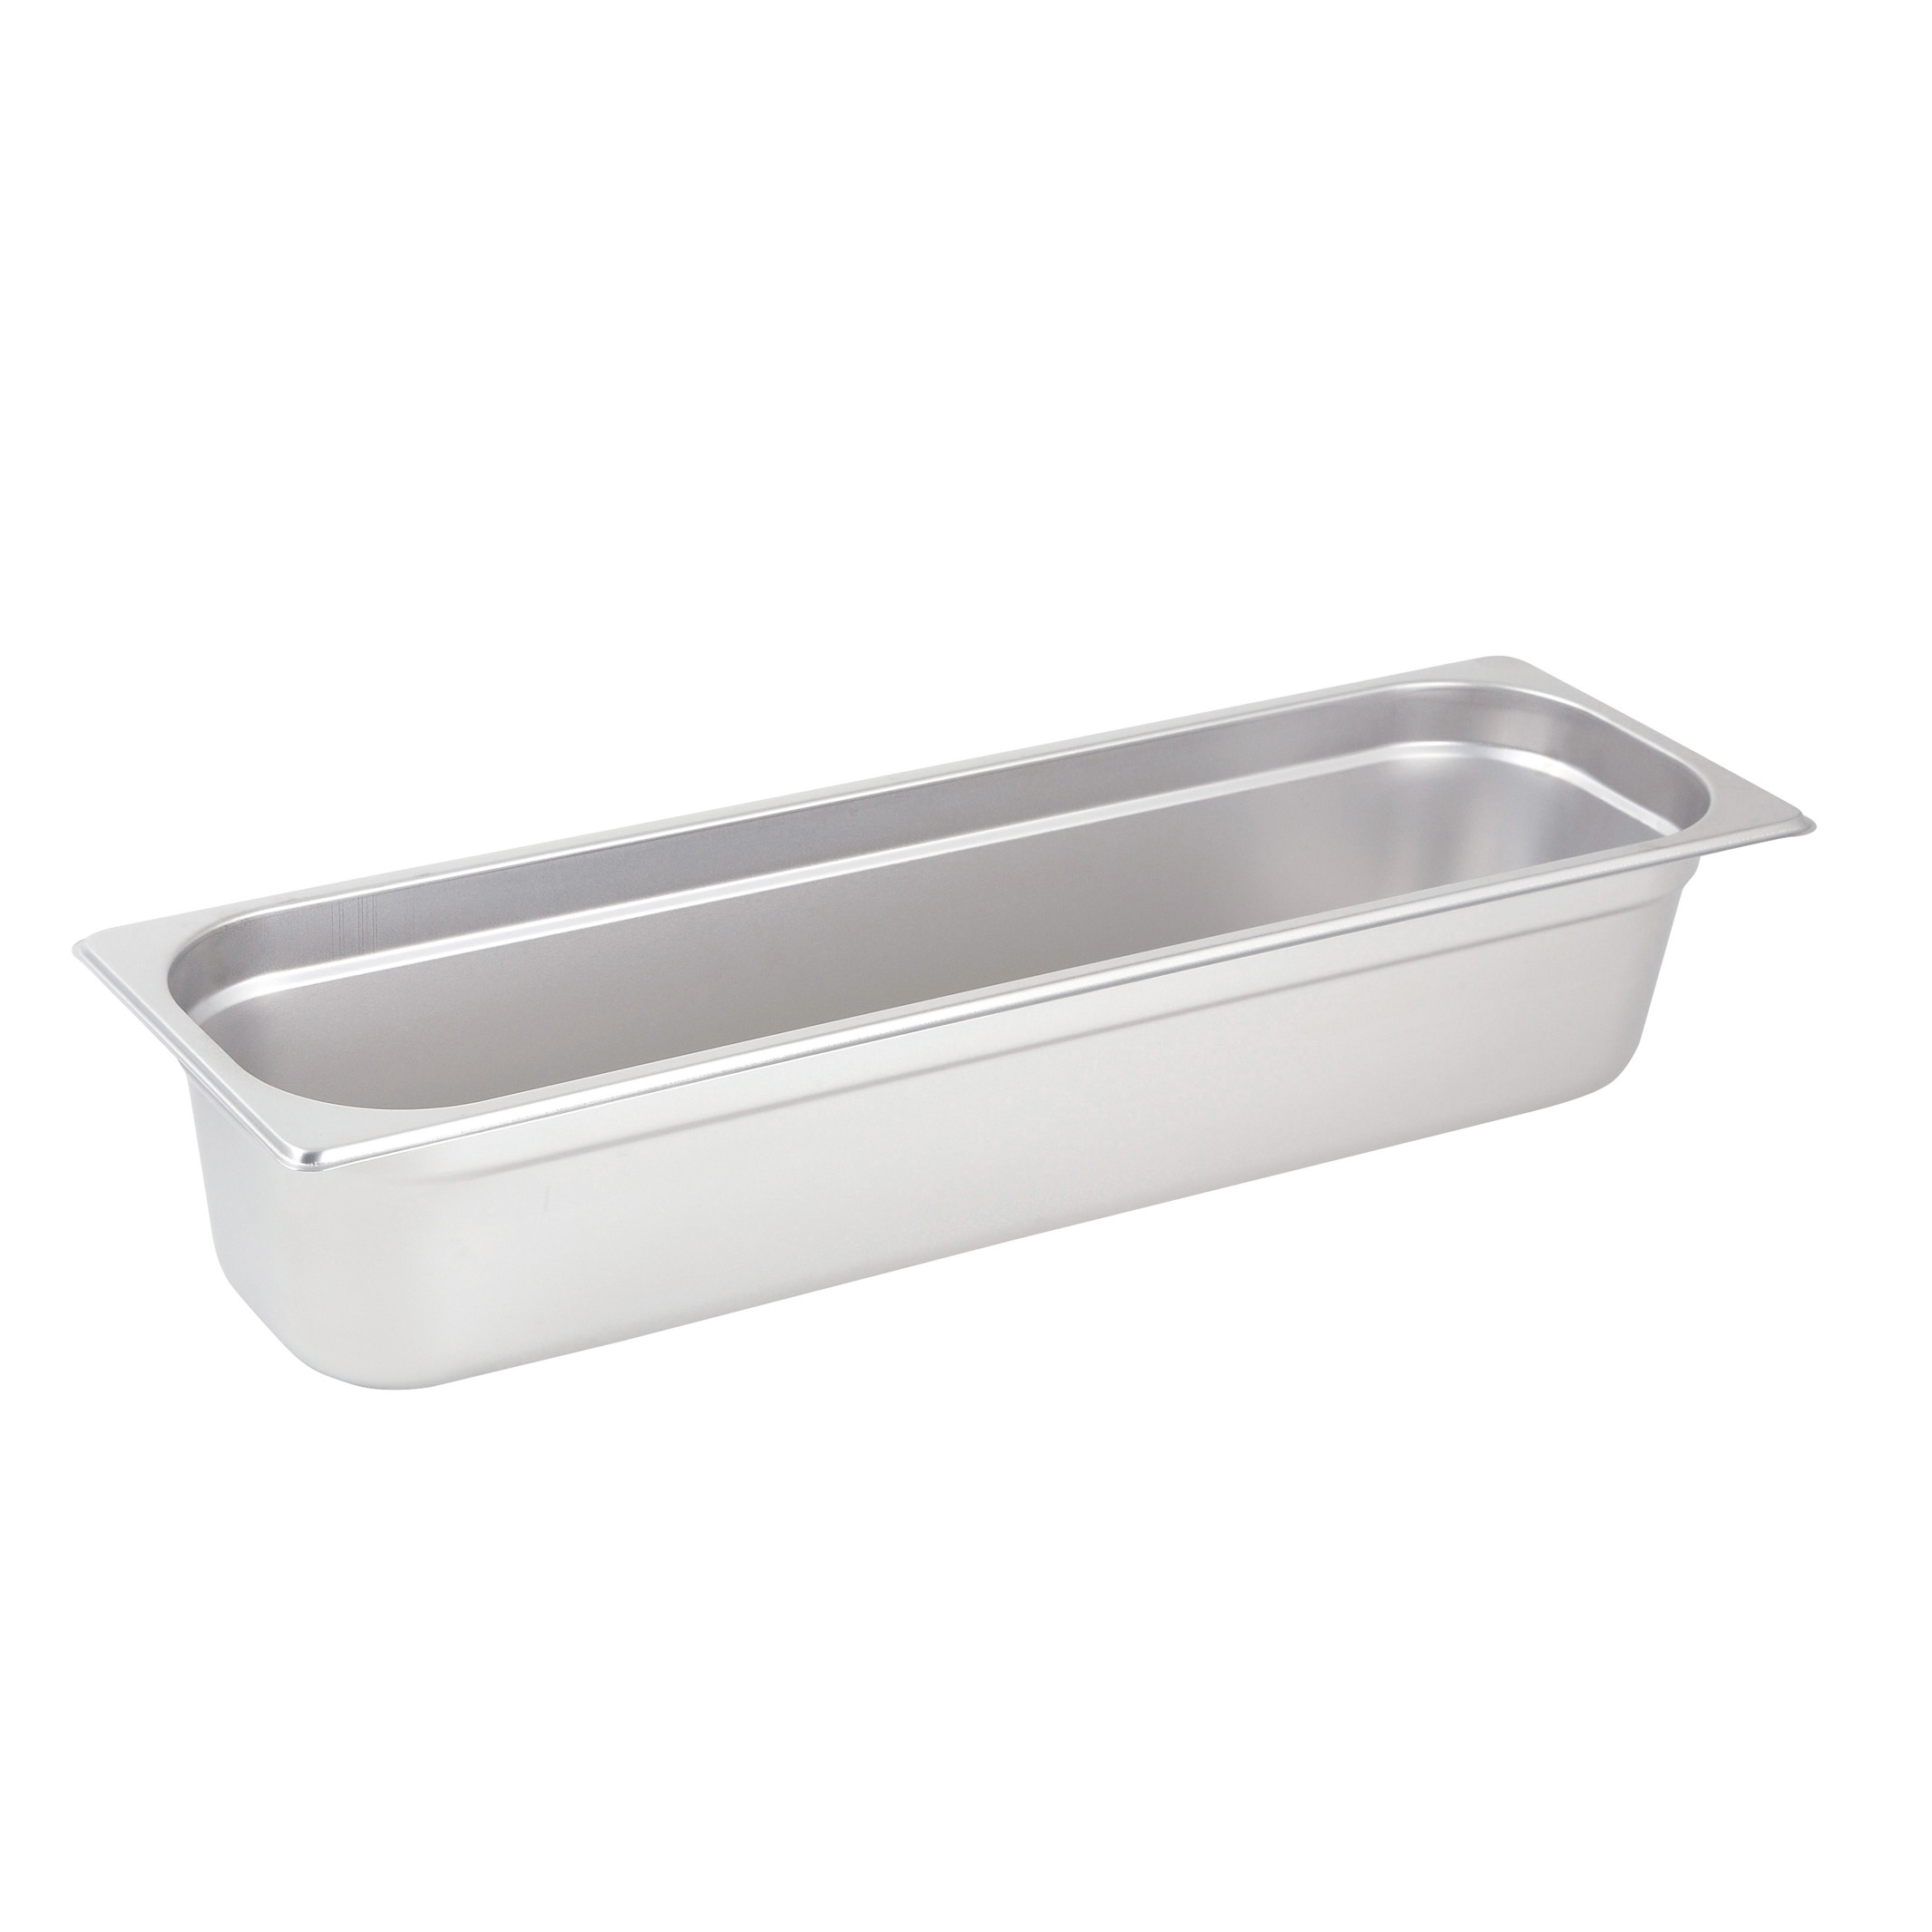 Winco SPJH-4HL steam table pan, stainless steel